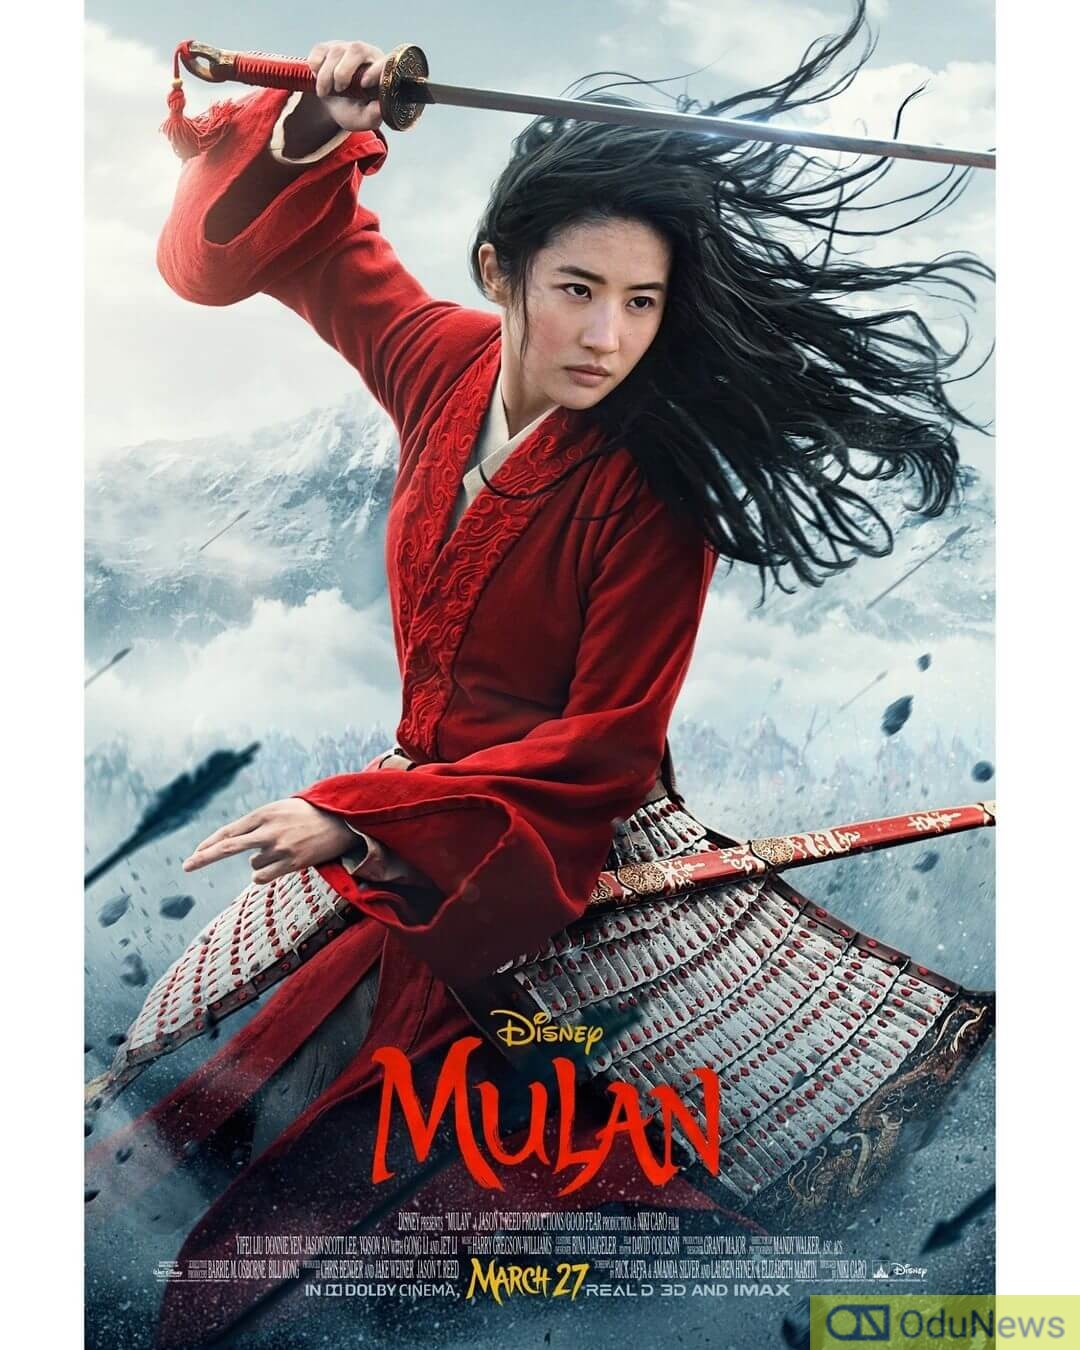 Some of the fans are calling MULAN Disney's best live-action remake yet